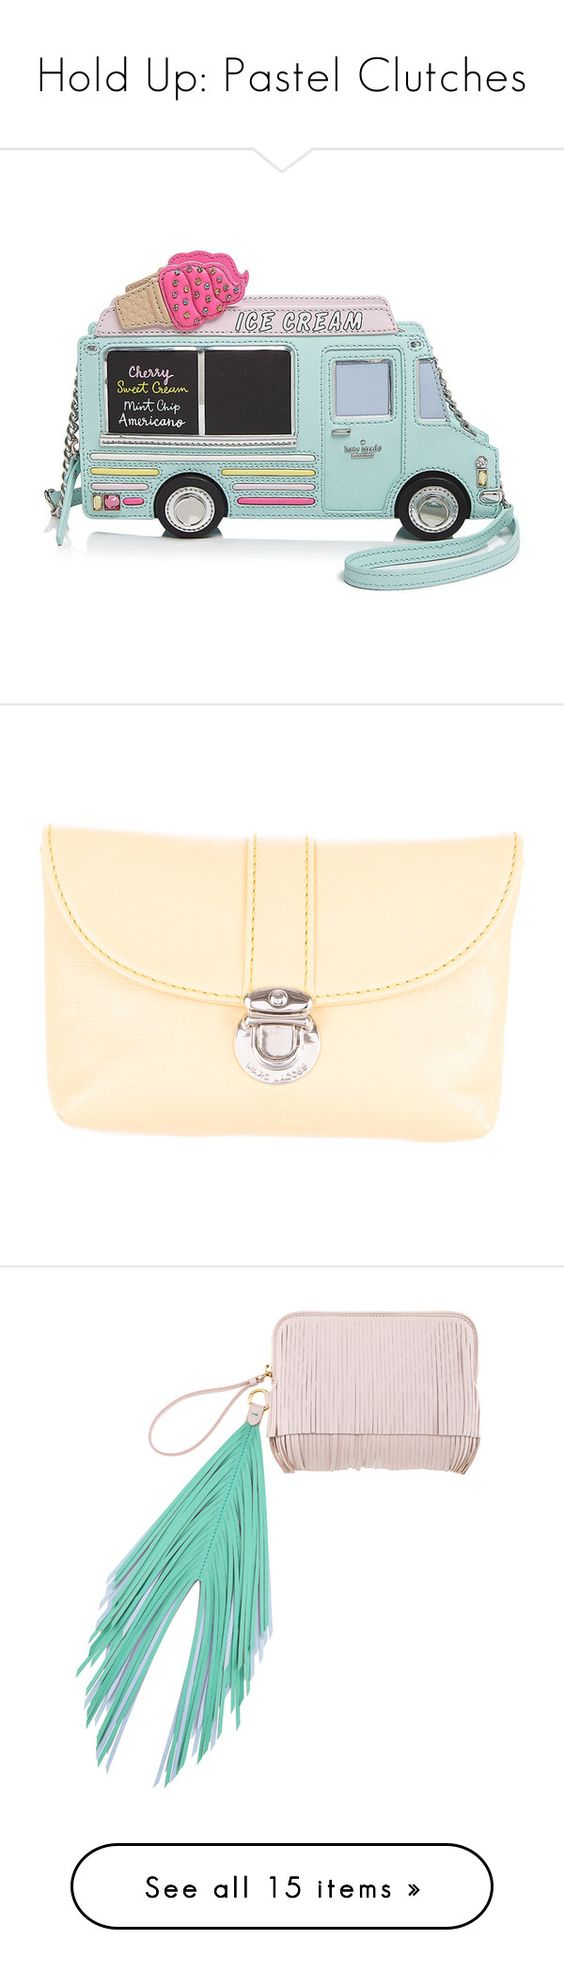 """Hold Up: Pastel Clutches"" by polyvore-editorial ❤ liked on Polyvore featuring pastelclutch, bags, handbags, clutches, multi, kate spade purses, kate spade handbag, green purse, kate spade clutches and cream purse"